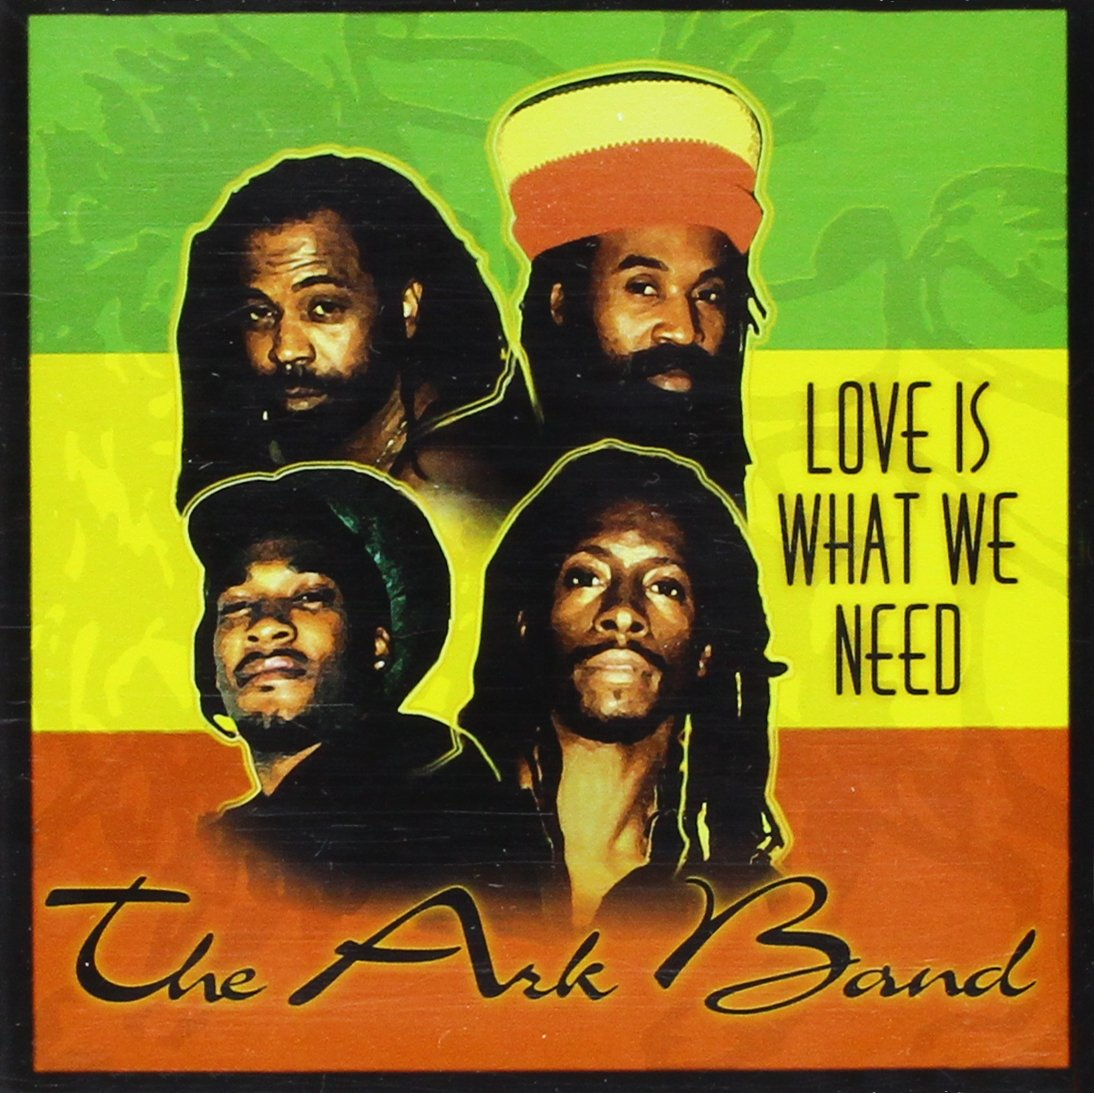 The Ark Band - Love Is What We Need (1999) [FLAC] Download